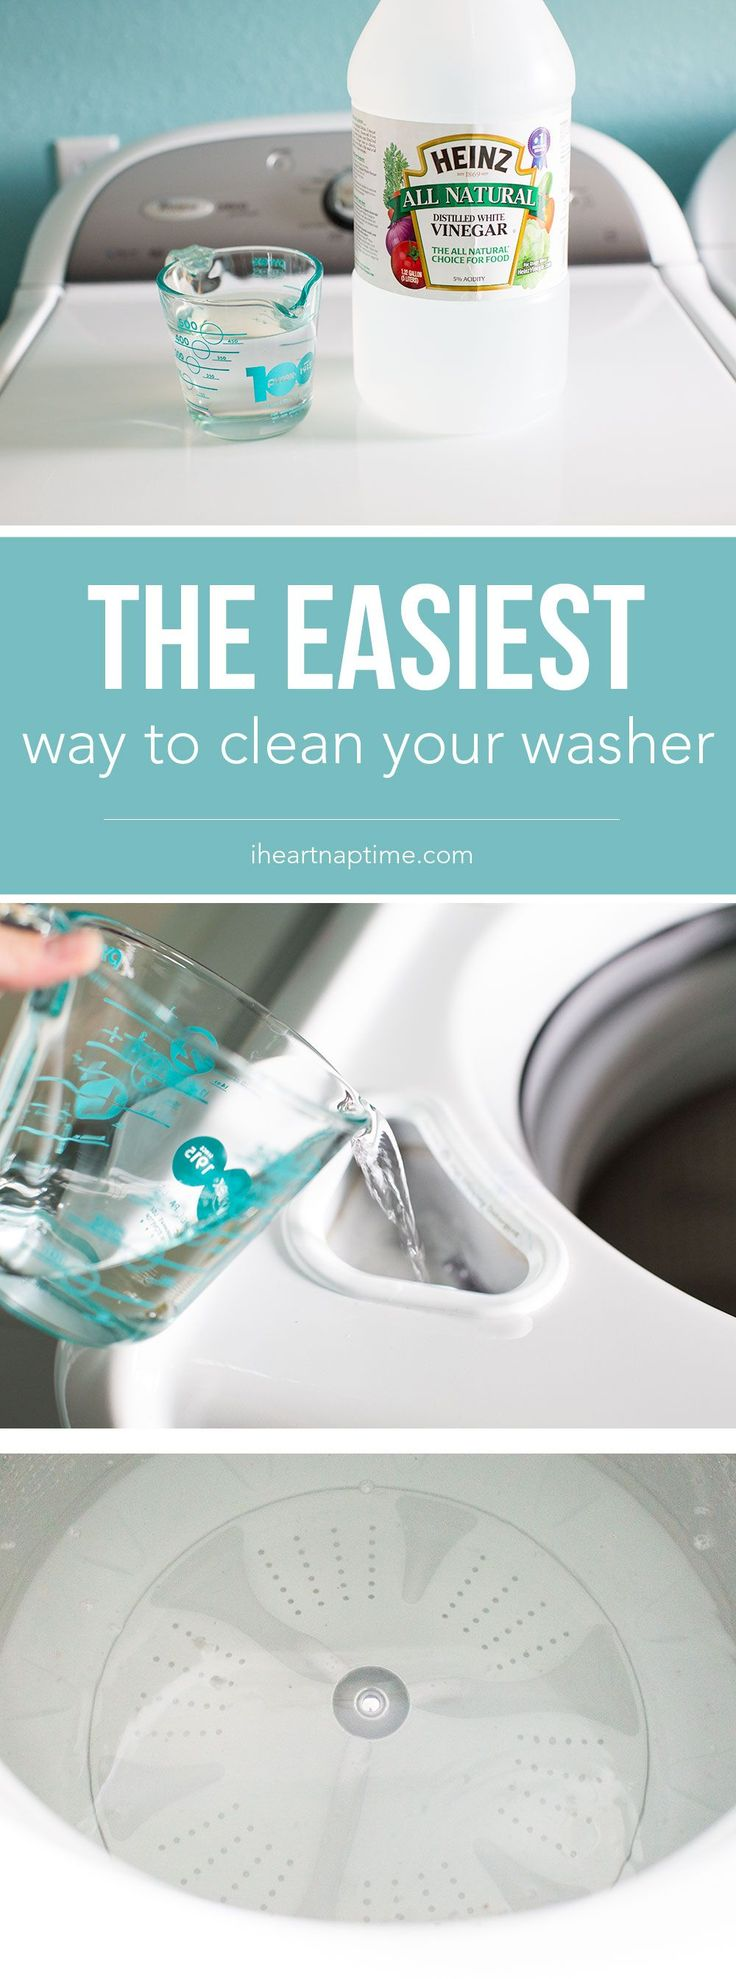 Here is the easiest way to clean your washer …all it takes is ONE ingredient and a few minutes to leave your washer smelling